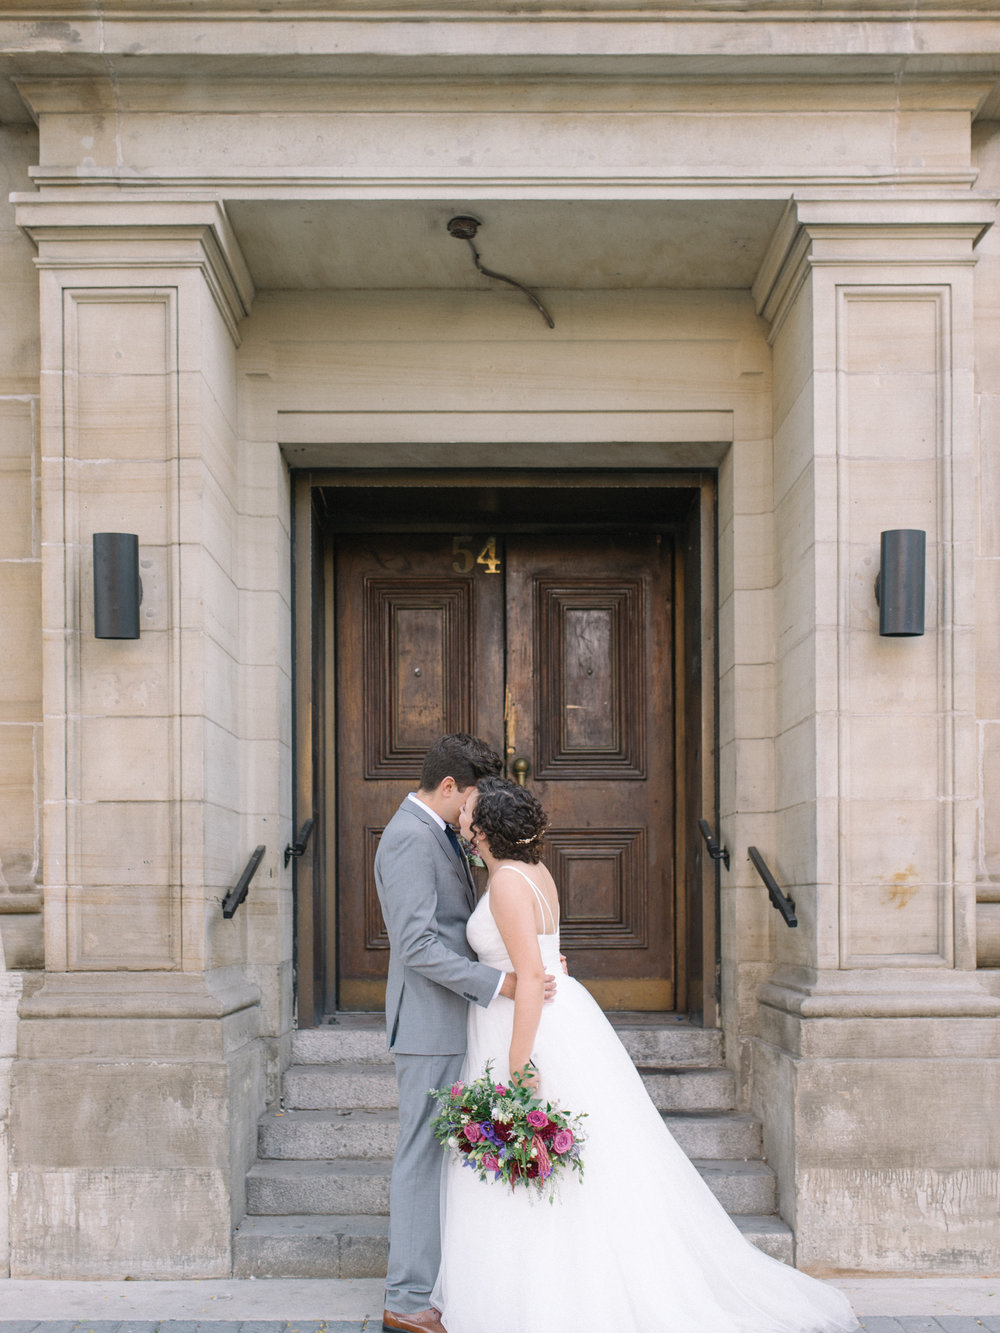 Art Gallery of Hamilton Wedding | Hamilton & Destination Wedding Photographer